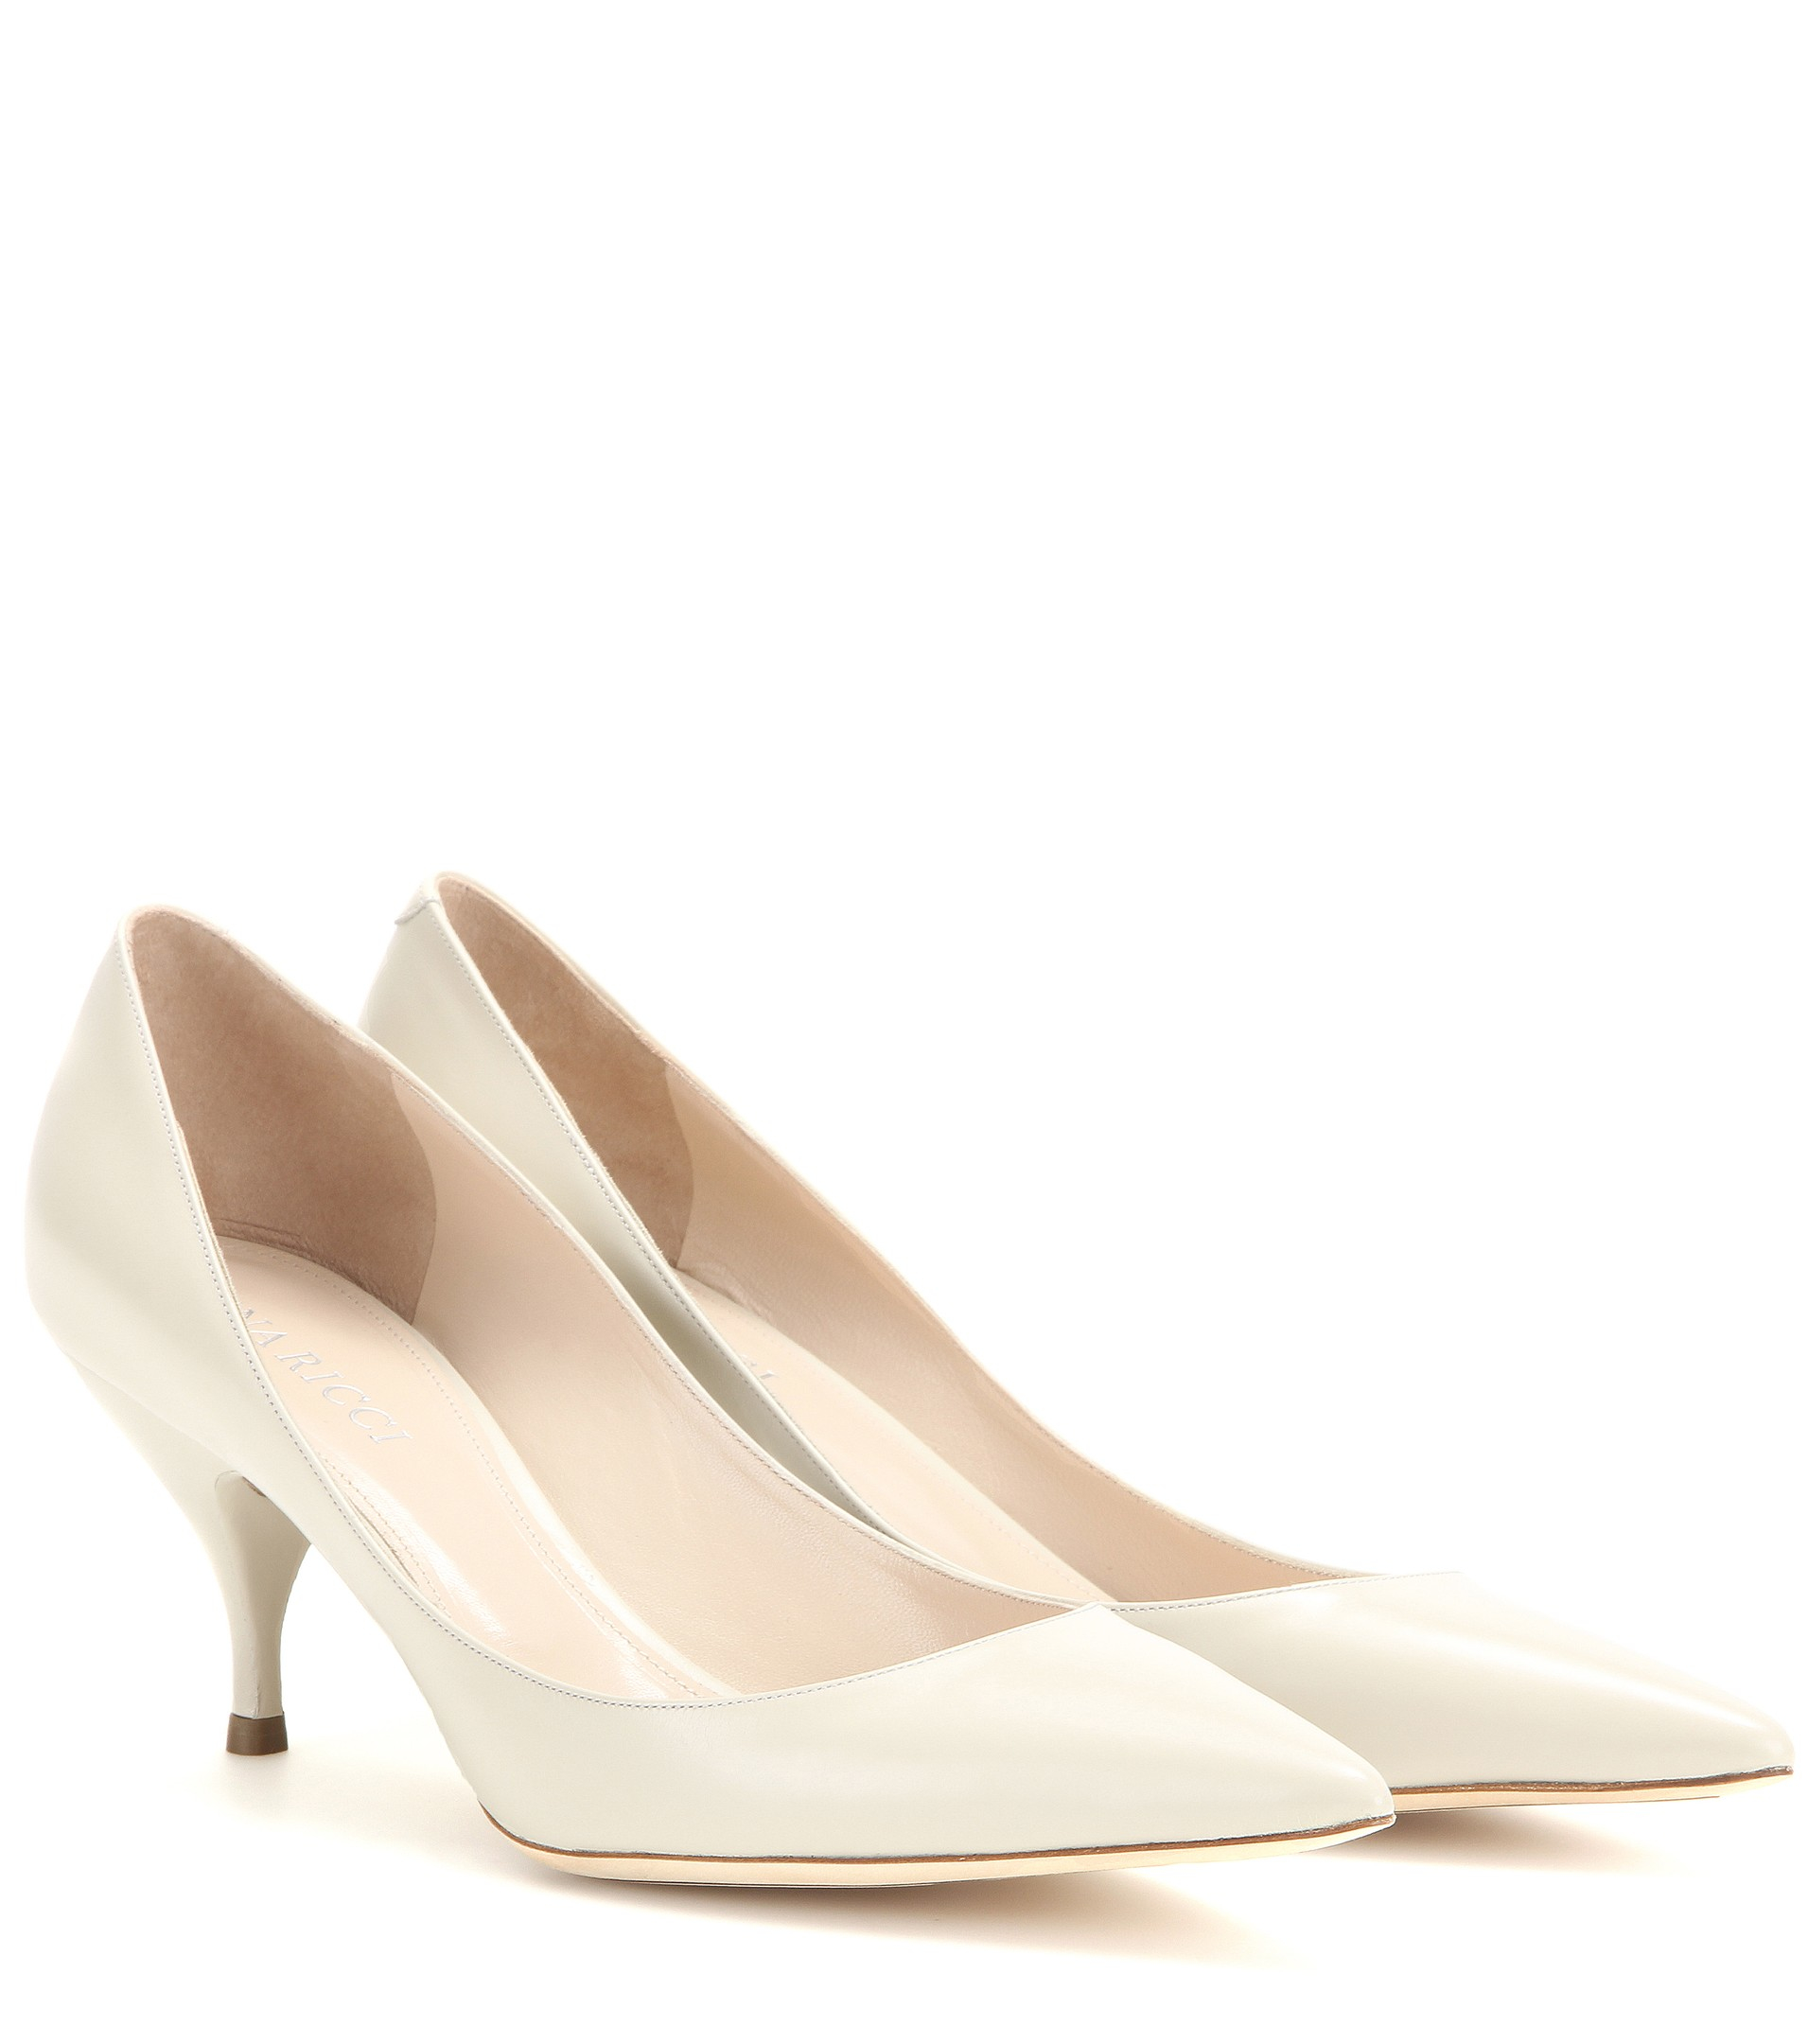 Nina Ricci Wool Round-Toe Pumps free shipping cheap online sale classic newest outlet the cheapest 2015 new online 08tYc1uOL3